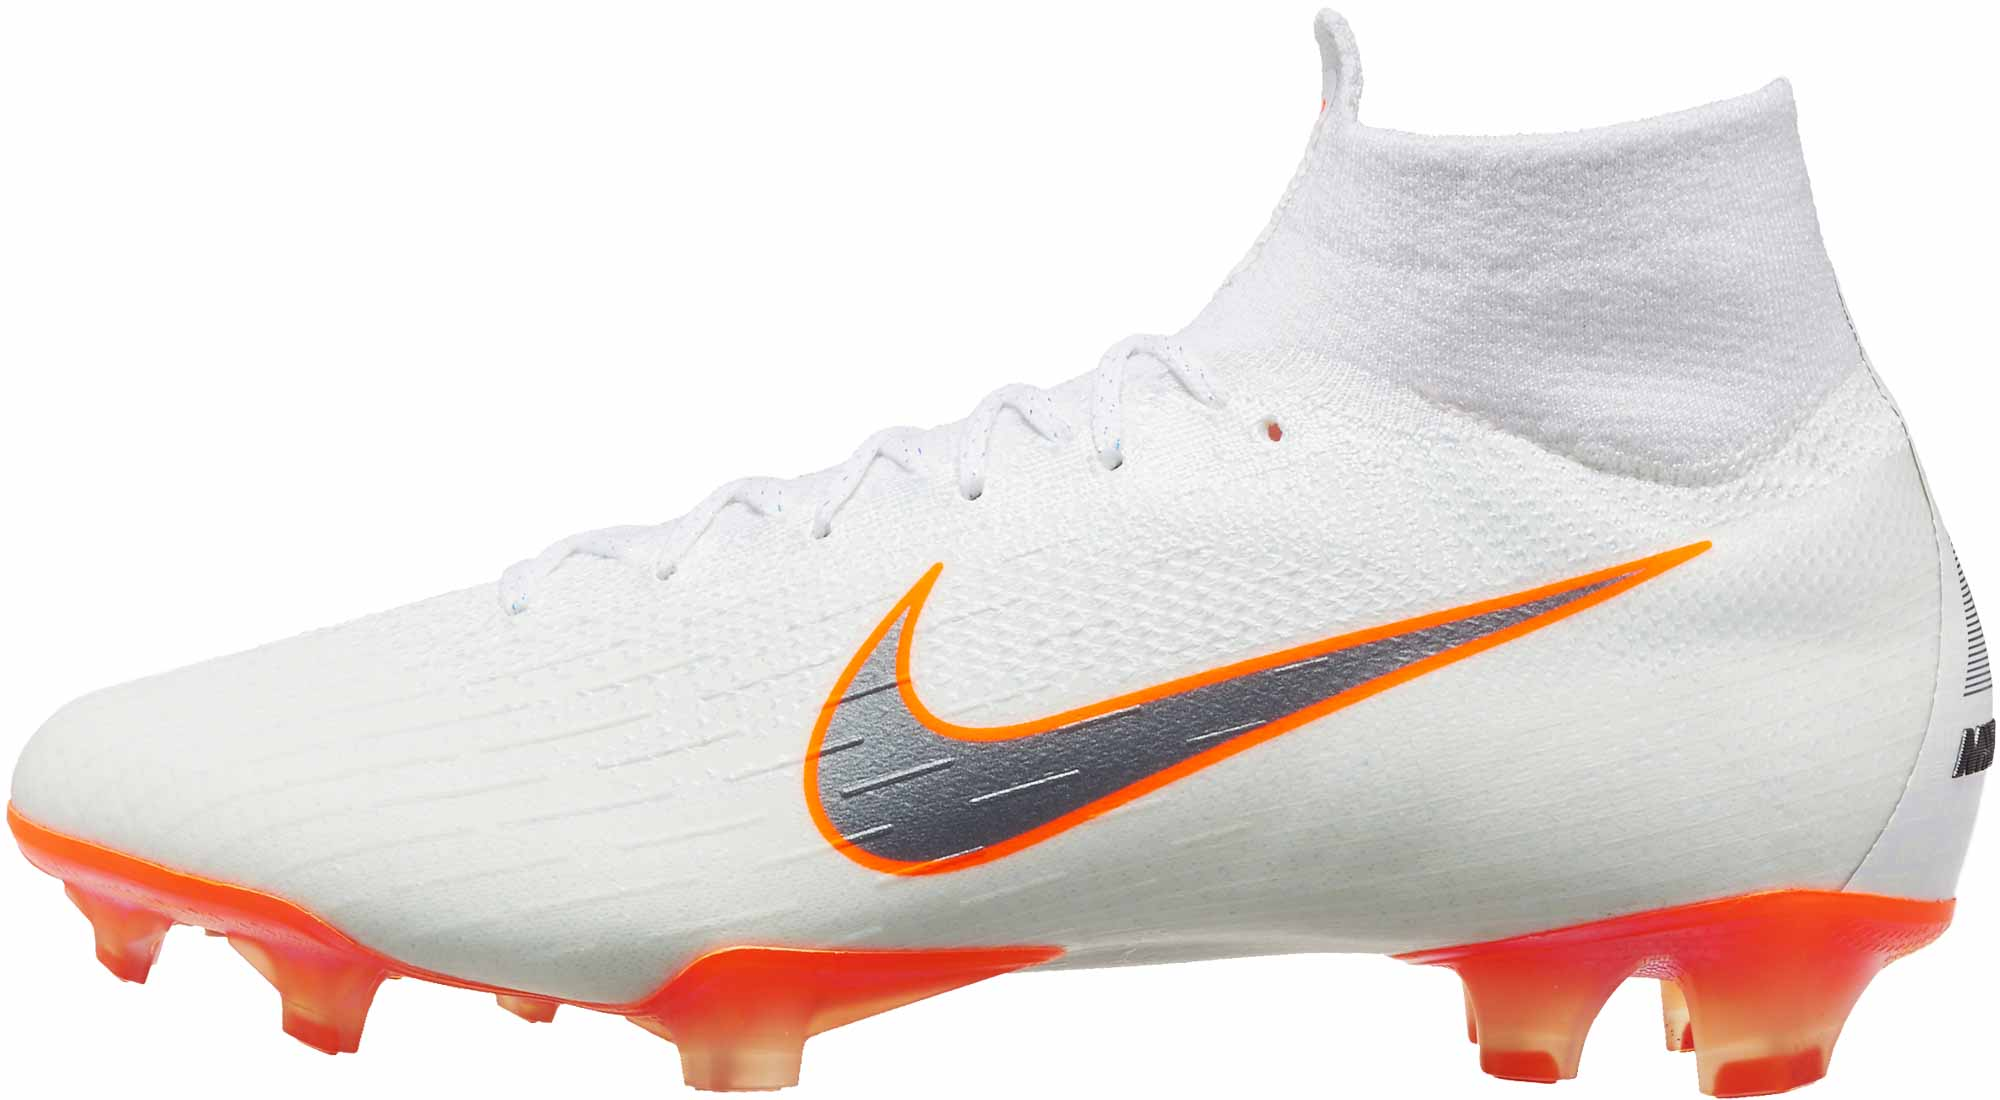 newest collection 83c2f b3d11 Nike Mercurial Superfly 6 Elite FG - White/Total Orange - SoccerPro